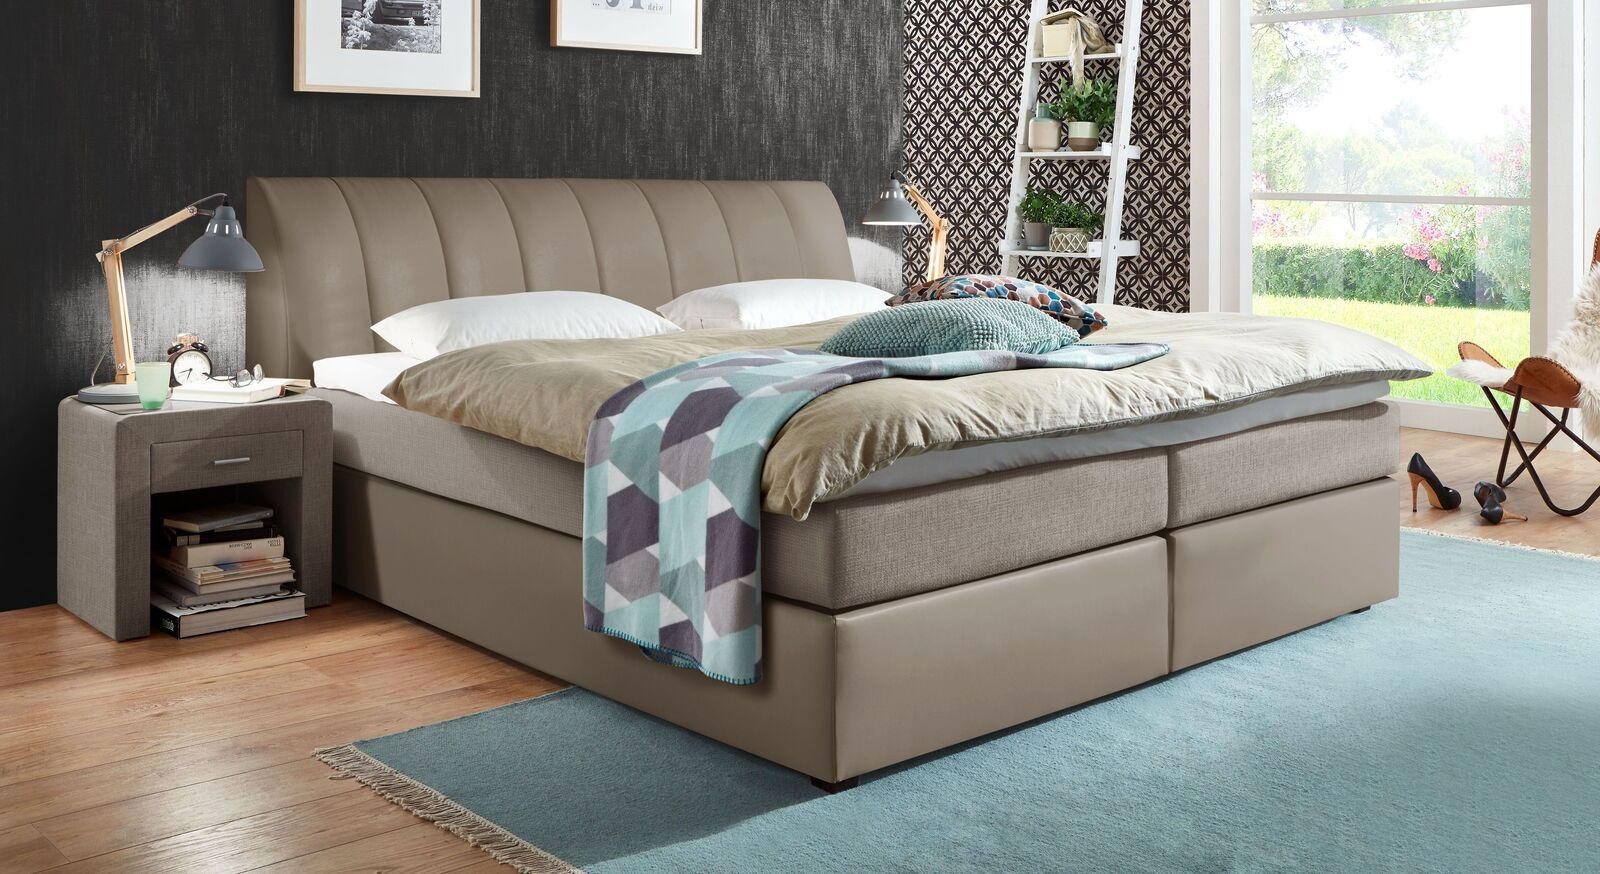 Boxspringbett Sydney in attraktivem Materialmix